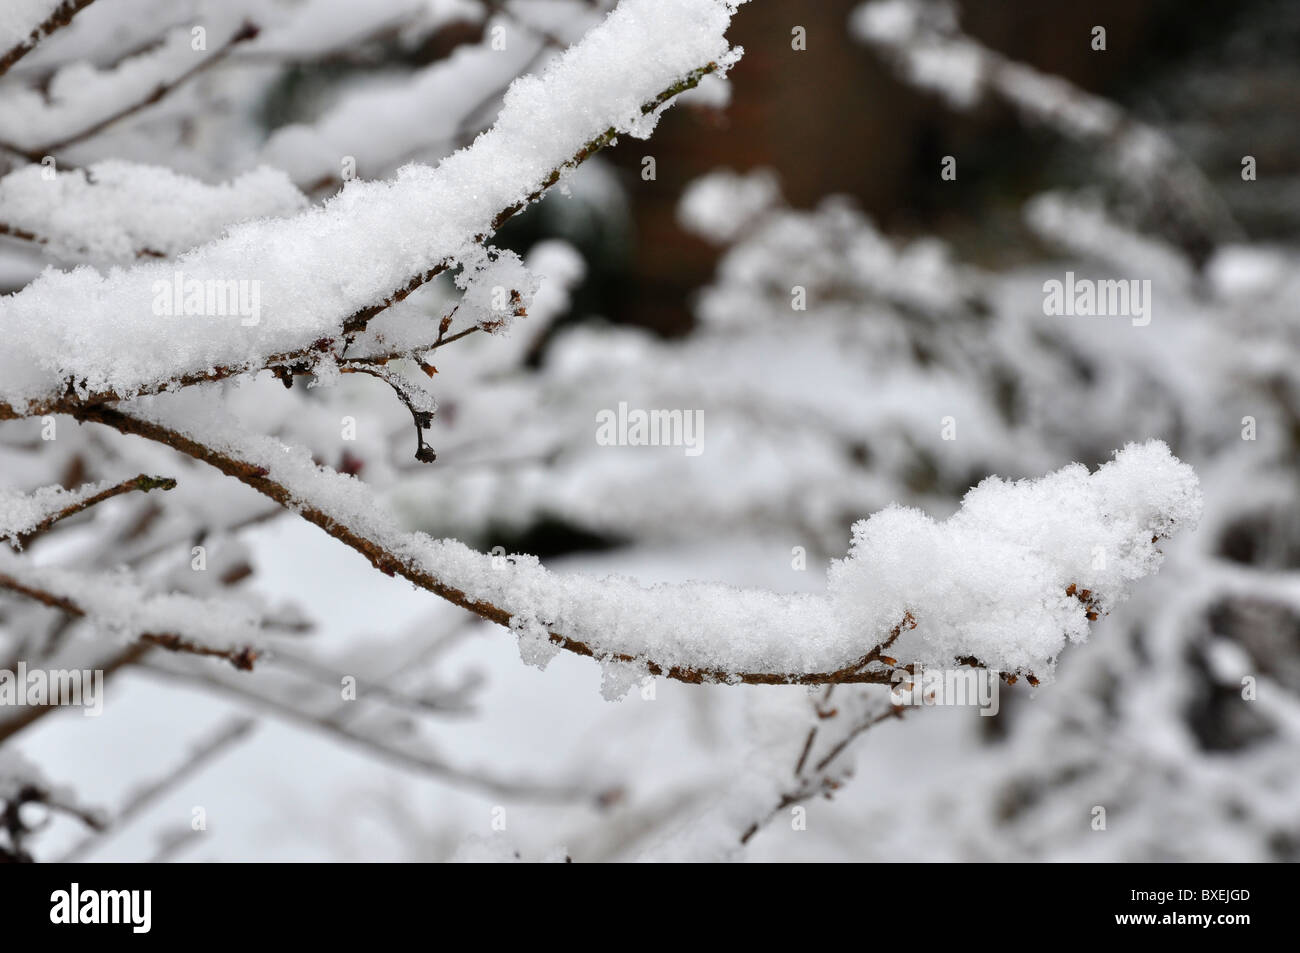 Little twig covered with heavy snow load - Stock Image